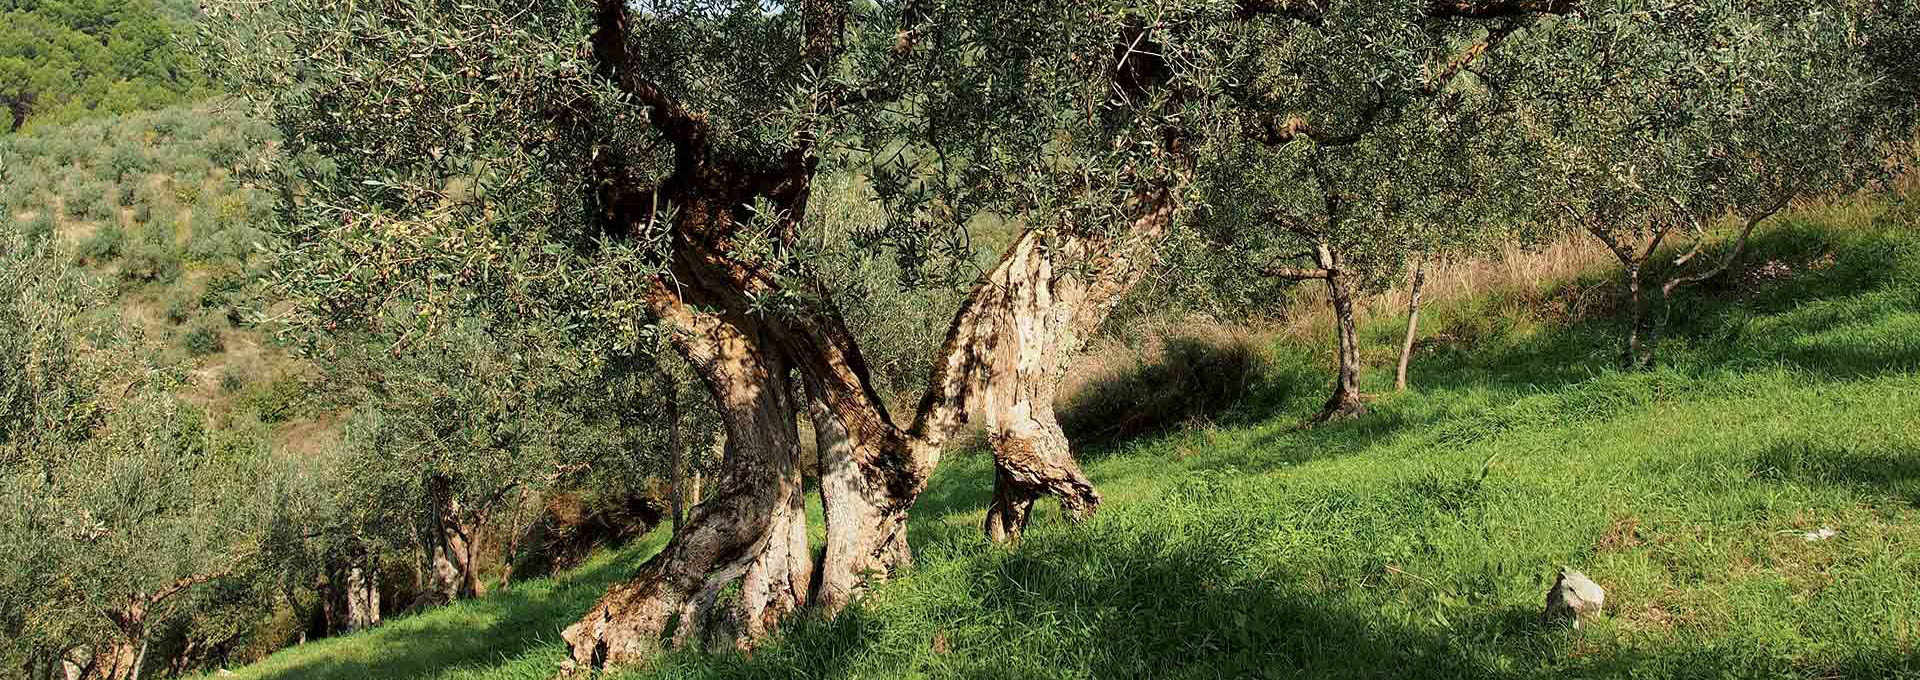 The Umbria PDO: Colli Martani and Colli Amerini